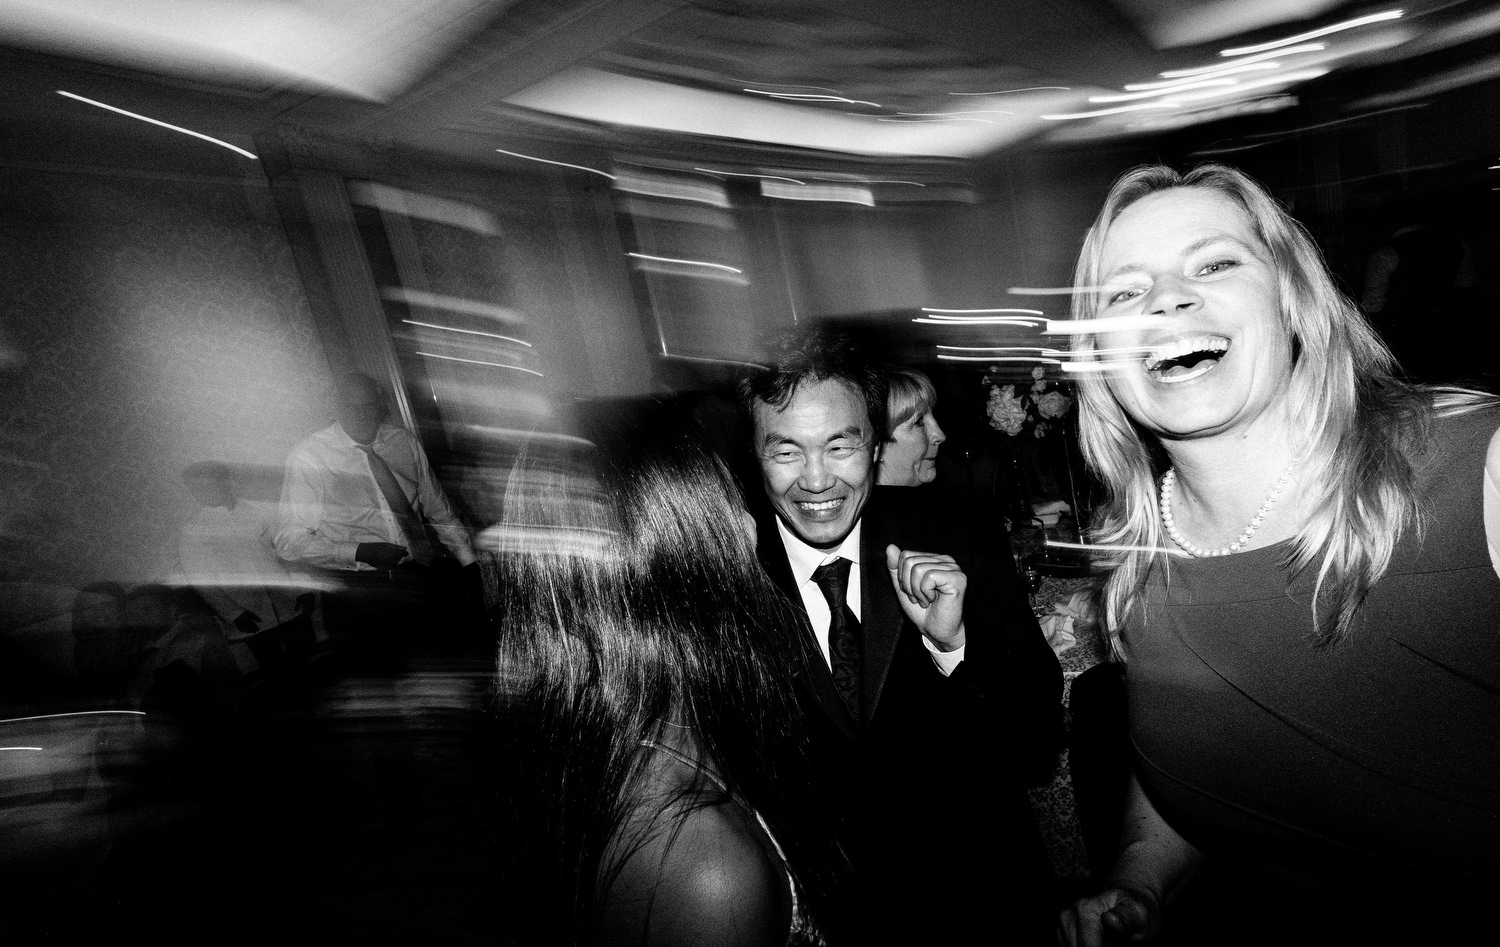 dmp0725_photographer_wedding_dublin_david_mcclelland_candid_photography_fujifilm_shelbourne_reception_documentary